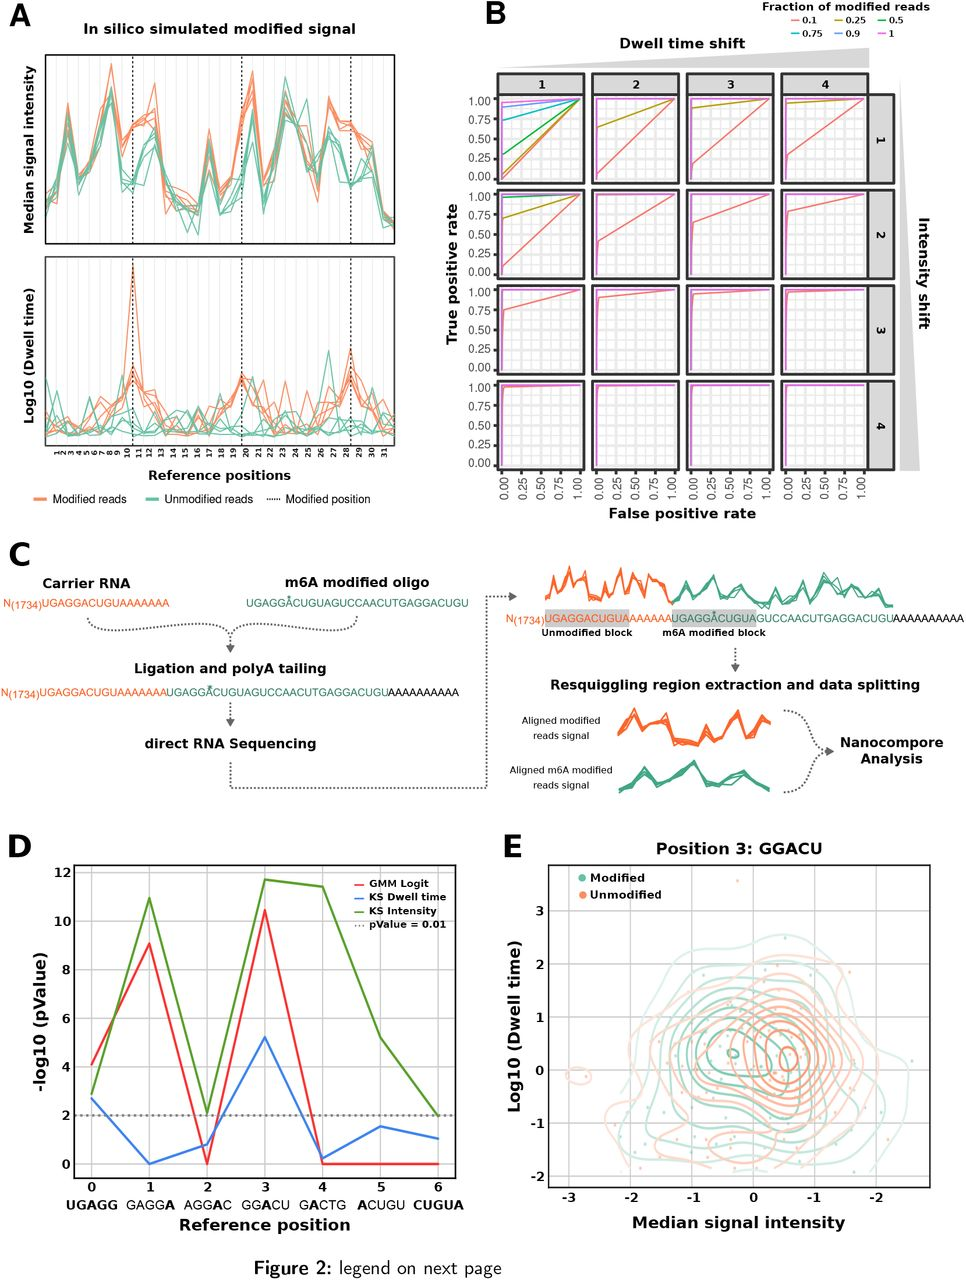 """In silico and in vitro validation of Nanocompore. A: Position plots showing the median intensity (top) and dwell time (bottom) for simulated data generated by Nanocompore SimReads. Dashed vertical lines indicate modified positions, where a clear signal shift between unmodified (green) and modified (orange) reads can be seen. B: ROC curves obtained with the GMM method on in silico generated data. The different subplots indicate varying amounts of intensity and dwell time shifts from the unmodified model (from 1 to 4 standard deviations), whereas the different colors indicate varying fractions of modified reads in the generated data (from 10% to 100%). All the comparisons are against a fully unmodified reference dataset. C: Diagram depicting the experimental and signal processing workflow used to run Nanocompore on a synthetic RNA carrying an <t>N6-methyladenosine</t> residue. Briefly, the RNA sequence was obtained by ligating an oligo carrying an <t>m6A</t> residue at position 6 to a longer unmodified carrier obtained by IVT of the firefly luciferase gene. The data obtained by DRS was parsed to extract the signal from the 2 short regions corresponding to a """"UGAGGACUGUA"""" with either an A or an m6A in the middle. D: Plot showing the Nanocompore p-values (-log 10 , y-axis. Tests: GMM+logit and KS) for the synthetically modified GGACU kmer and those surrounding it. E: Scatter plot showing the median signal intensity (x-axis) and scaled dwell time (log 10 , y-axis) for the synthetically modified kmer. The concentric lines show the kernel density estimates for the two samples."""